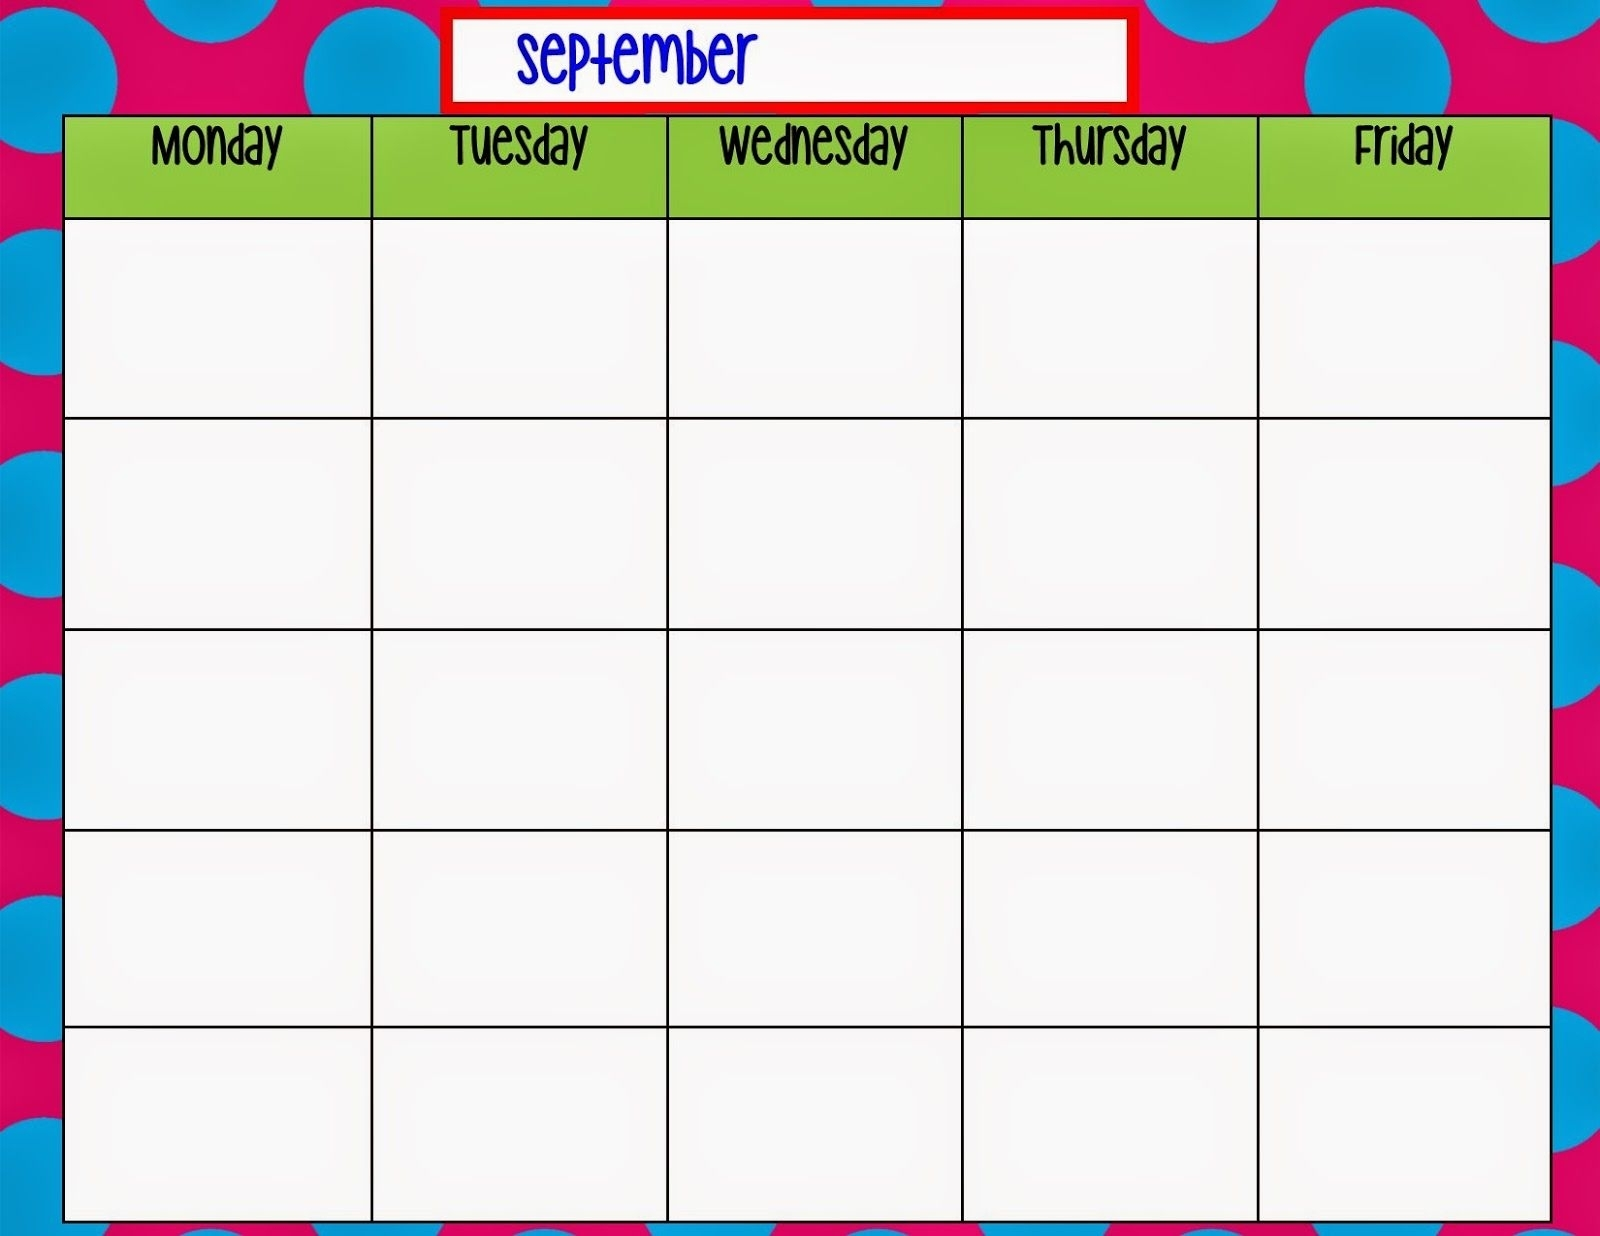 Monday Through Friday Calendar Template | Preschool | Printable throughout Weekly Agenda Monday Through Friday